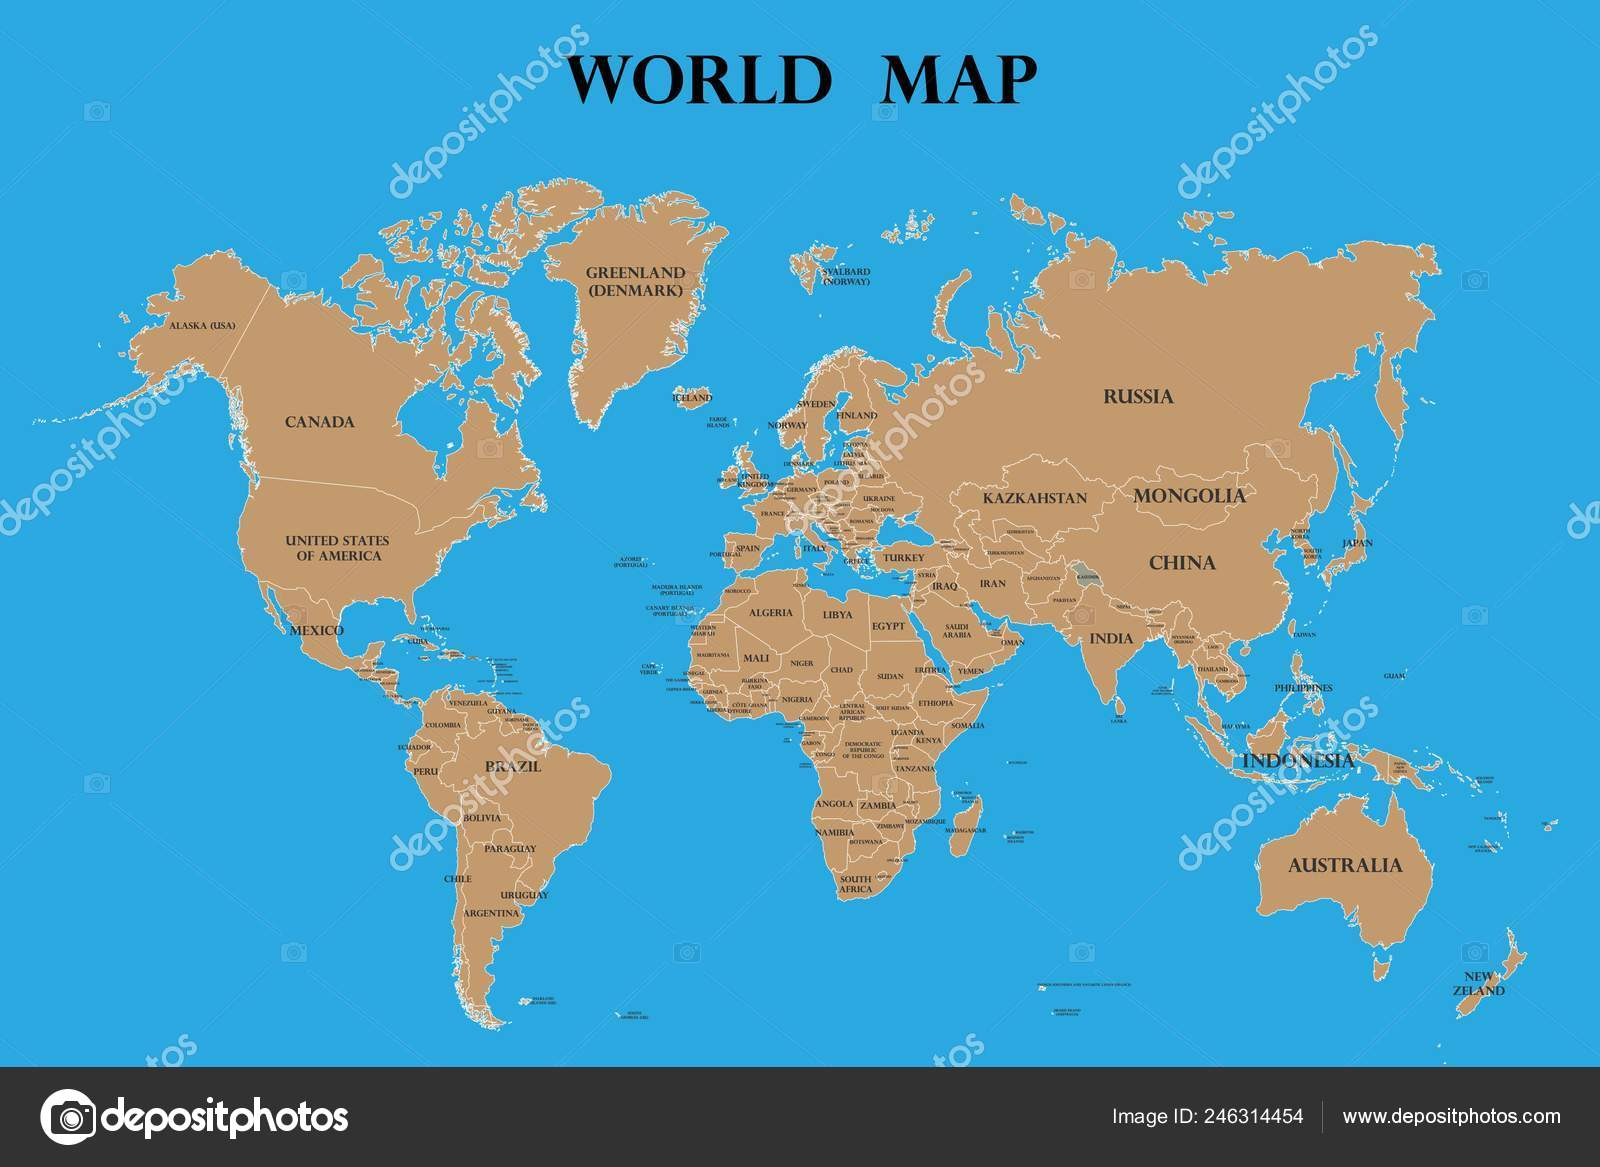 Picture of: World Map Countries Names High Detailed Vector World Map Complete Stock Vector C Lakmaljz Gmail Com 246314454